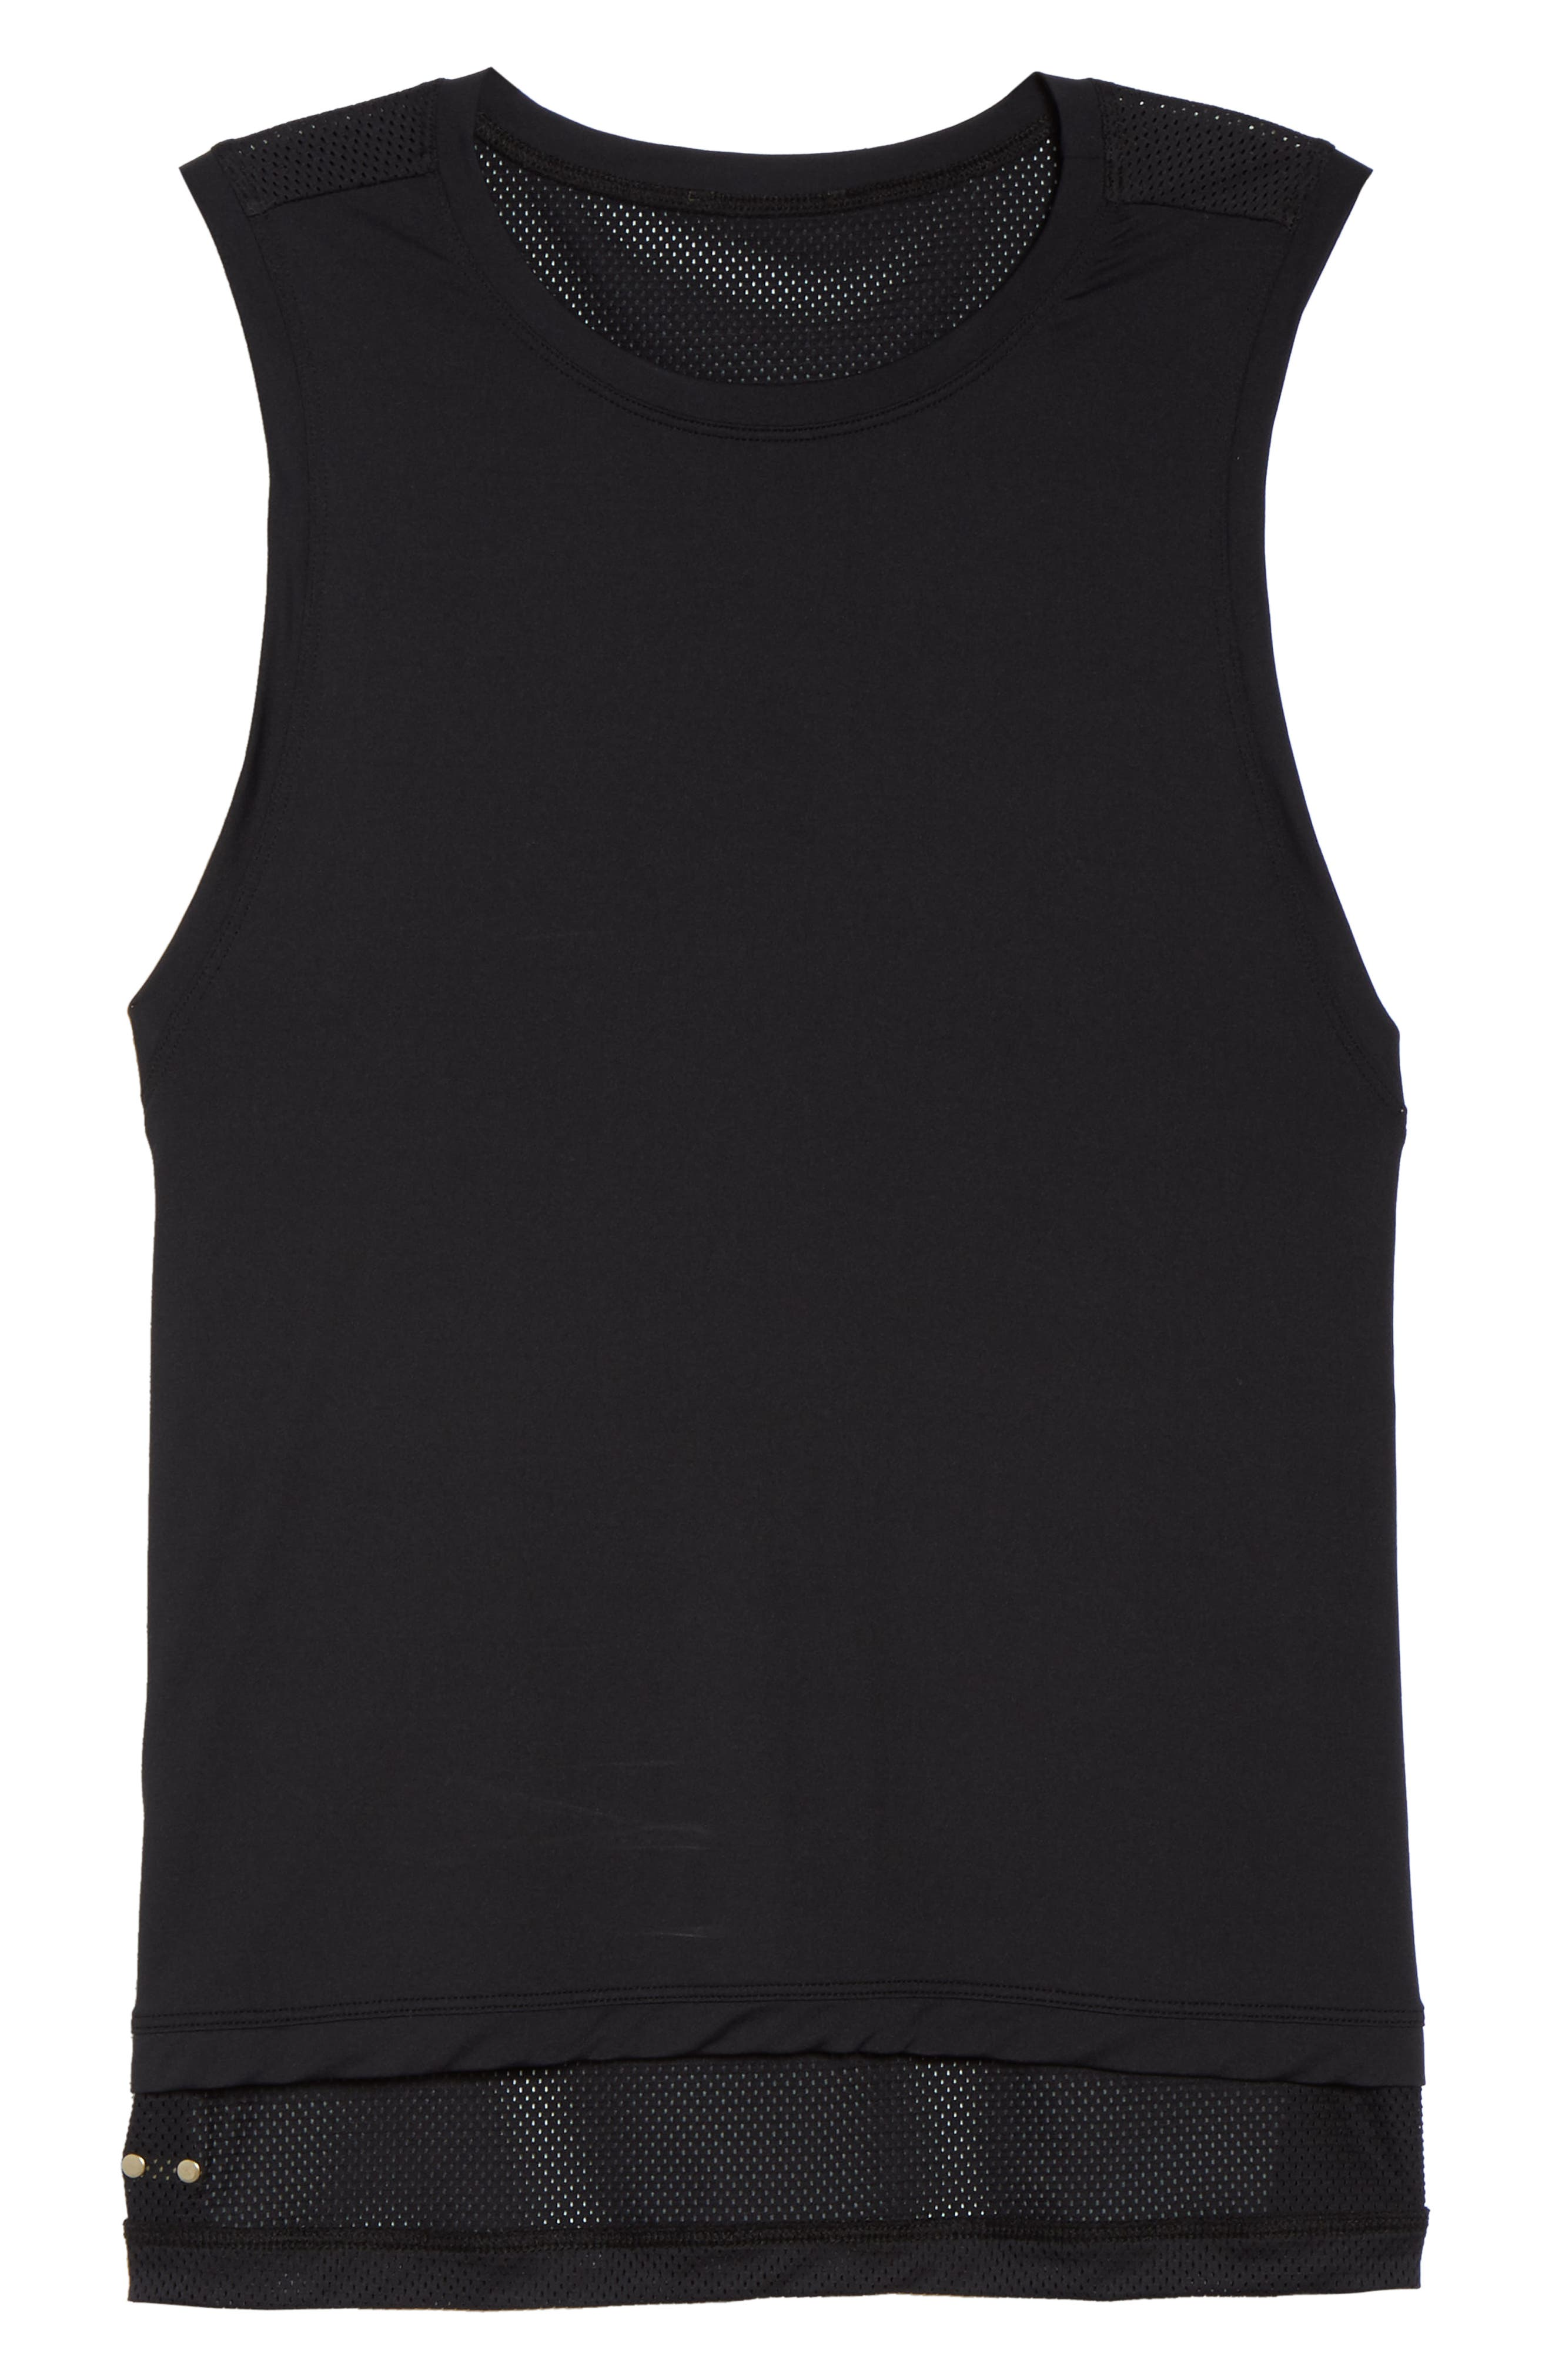 Skimm Mesh Back Tank,                             Alternate thumbnail 7, color,                             001